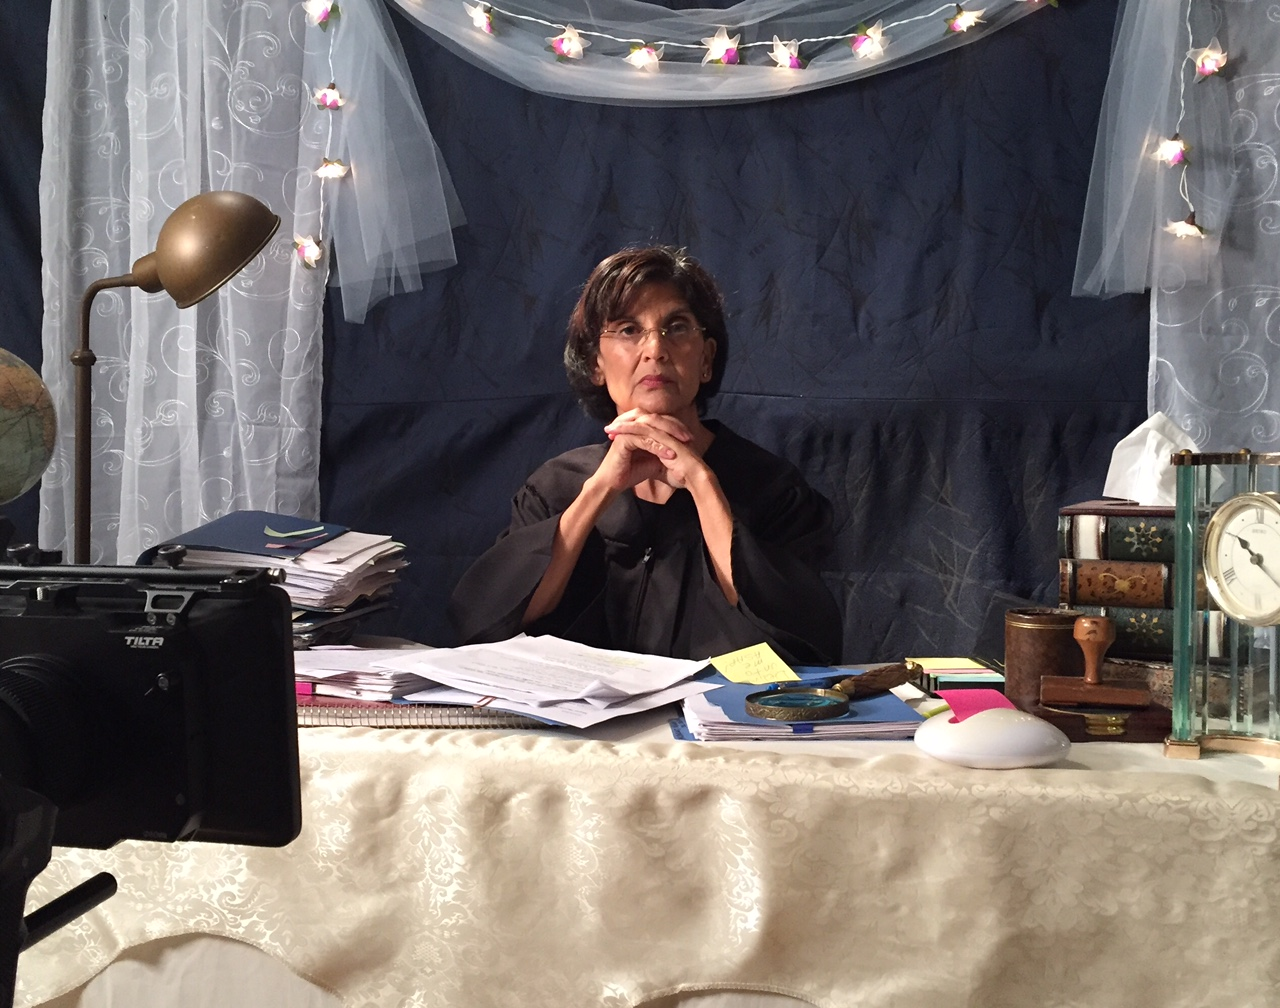 Alison Shanks as Judge in the celestial courtroom.